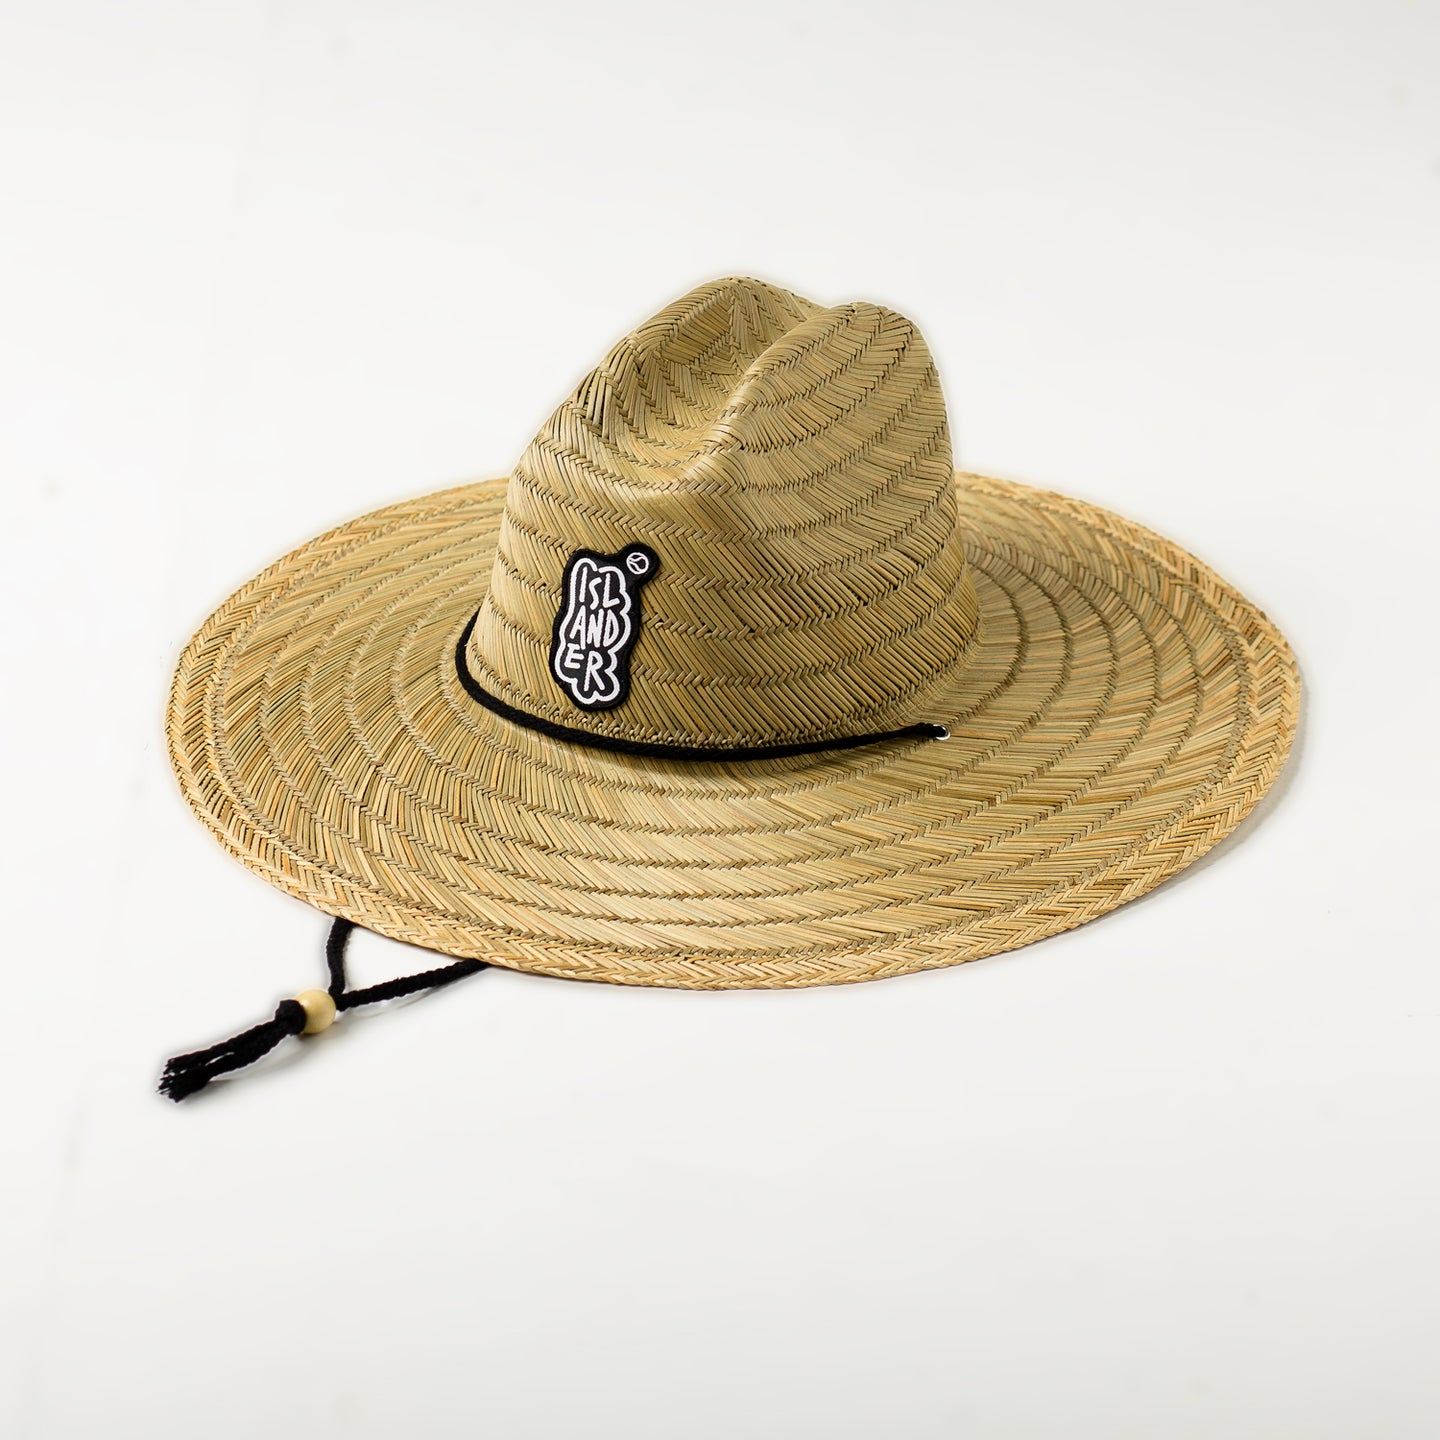 Islander Straw Hat Black